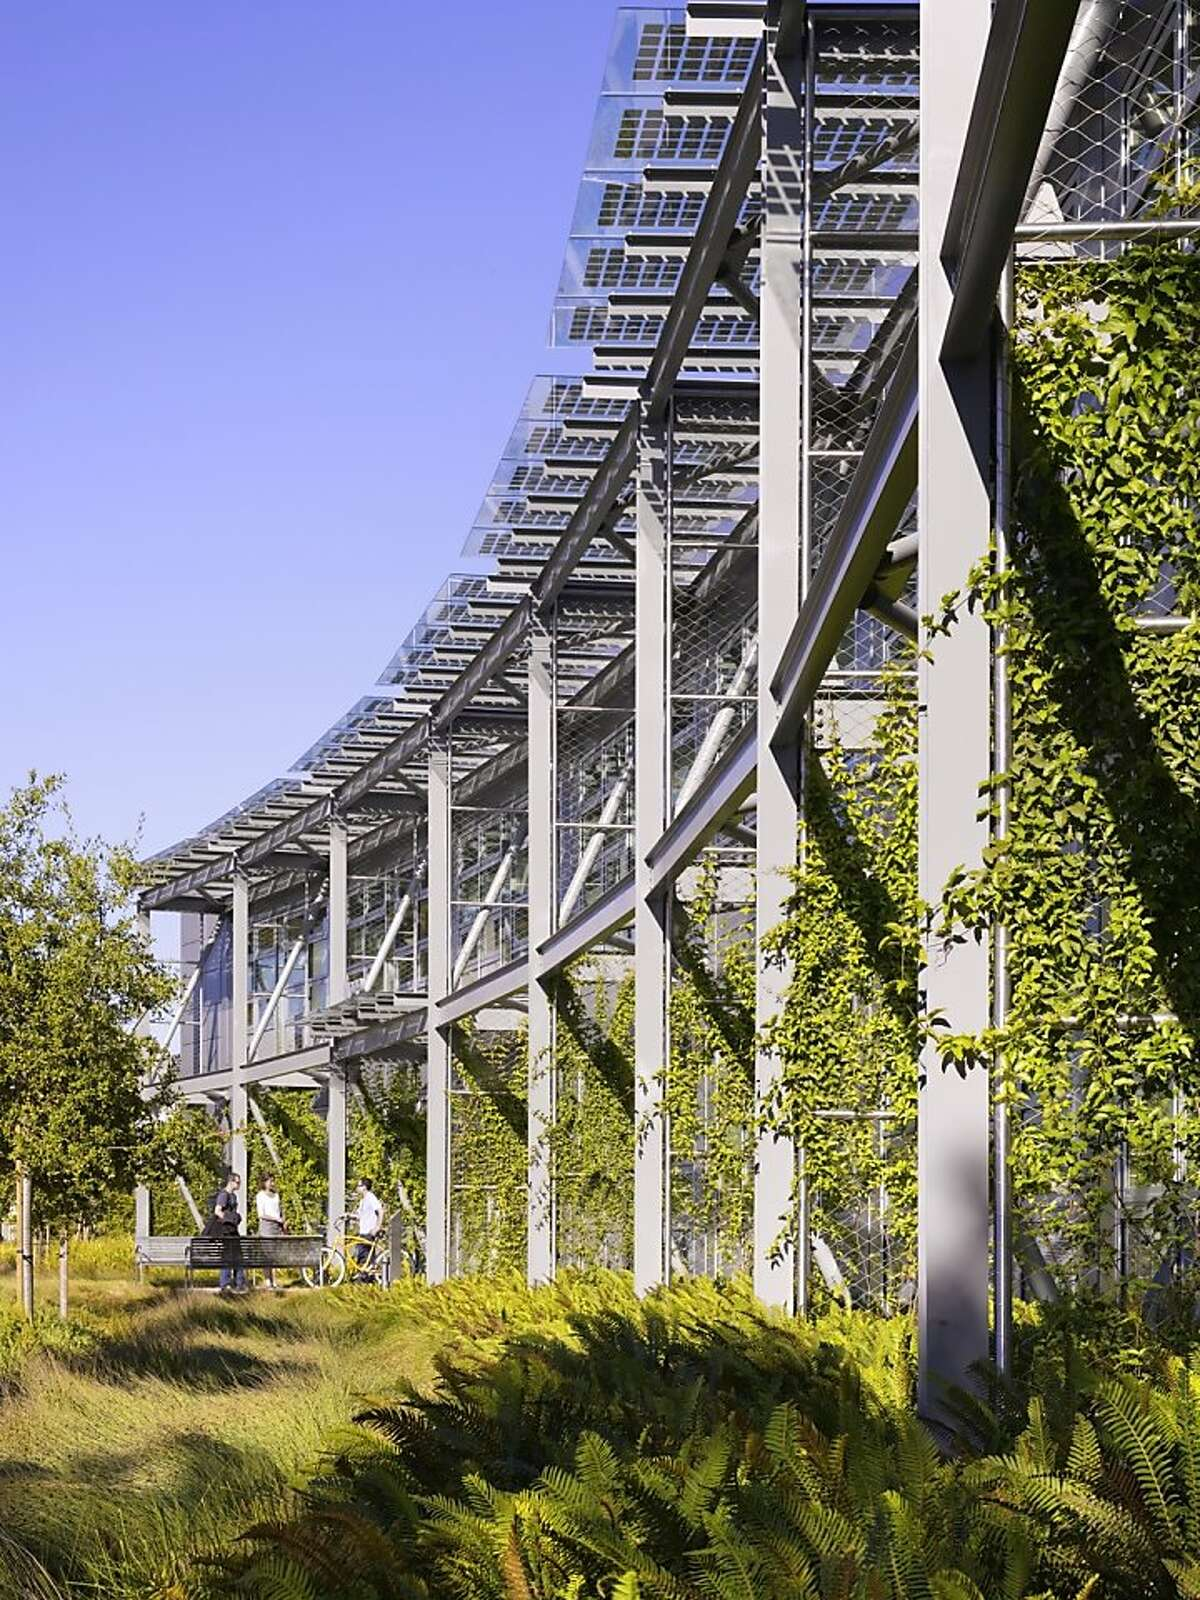 The new NASA Ames Research Center at Moffett Field, dubbed Sustainability Base, was designed by William McDonough + Partners. It includes natural ventilation and extensive use of recycled water